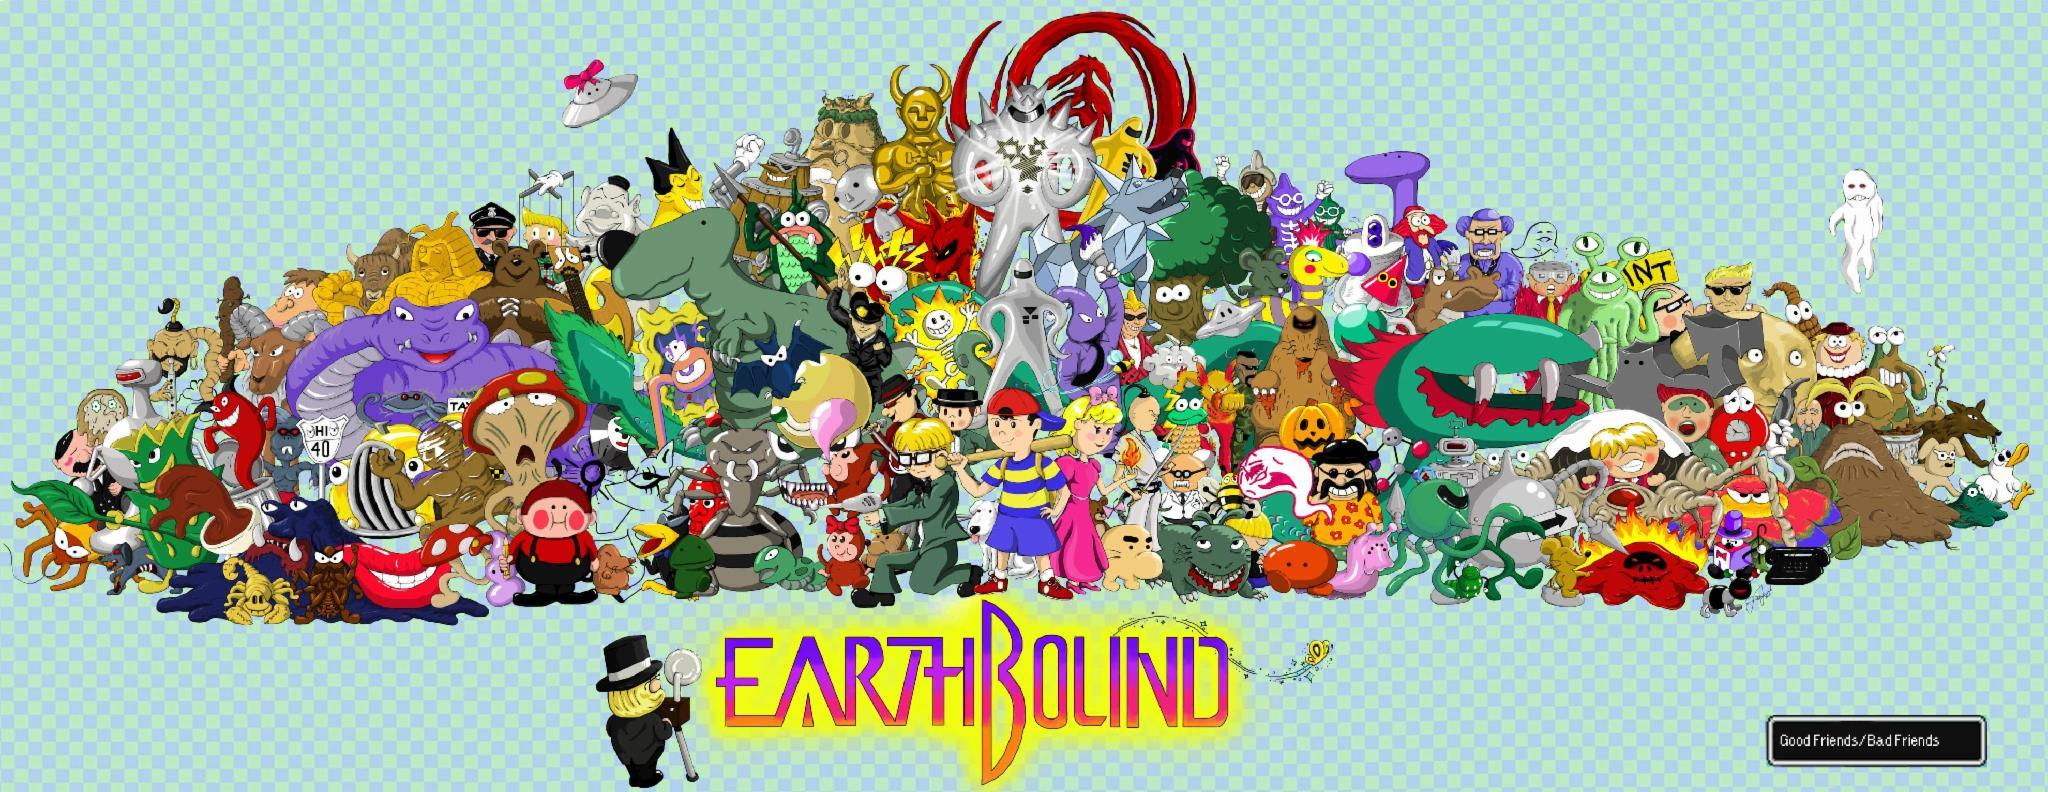 What is Earthbound about?